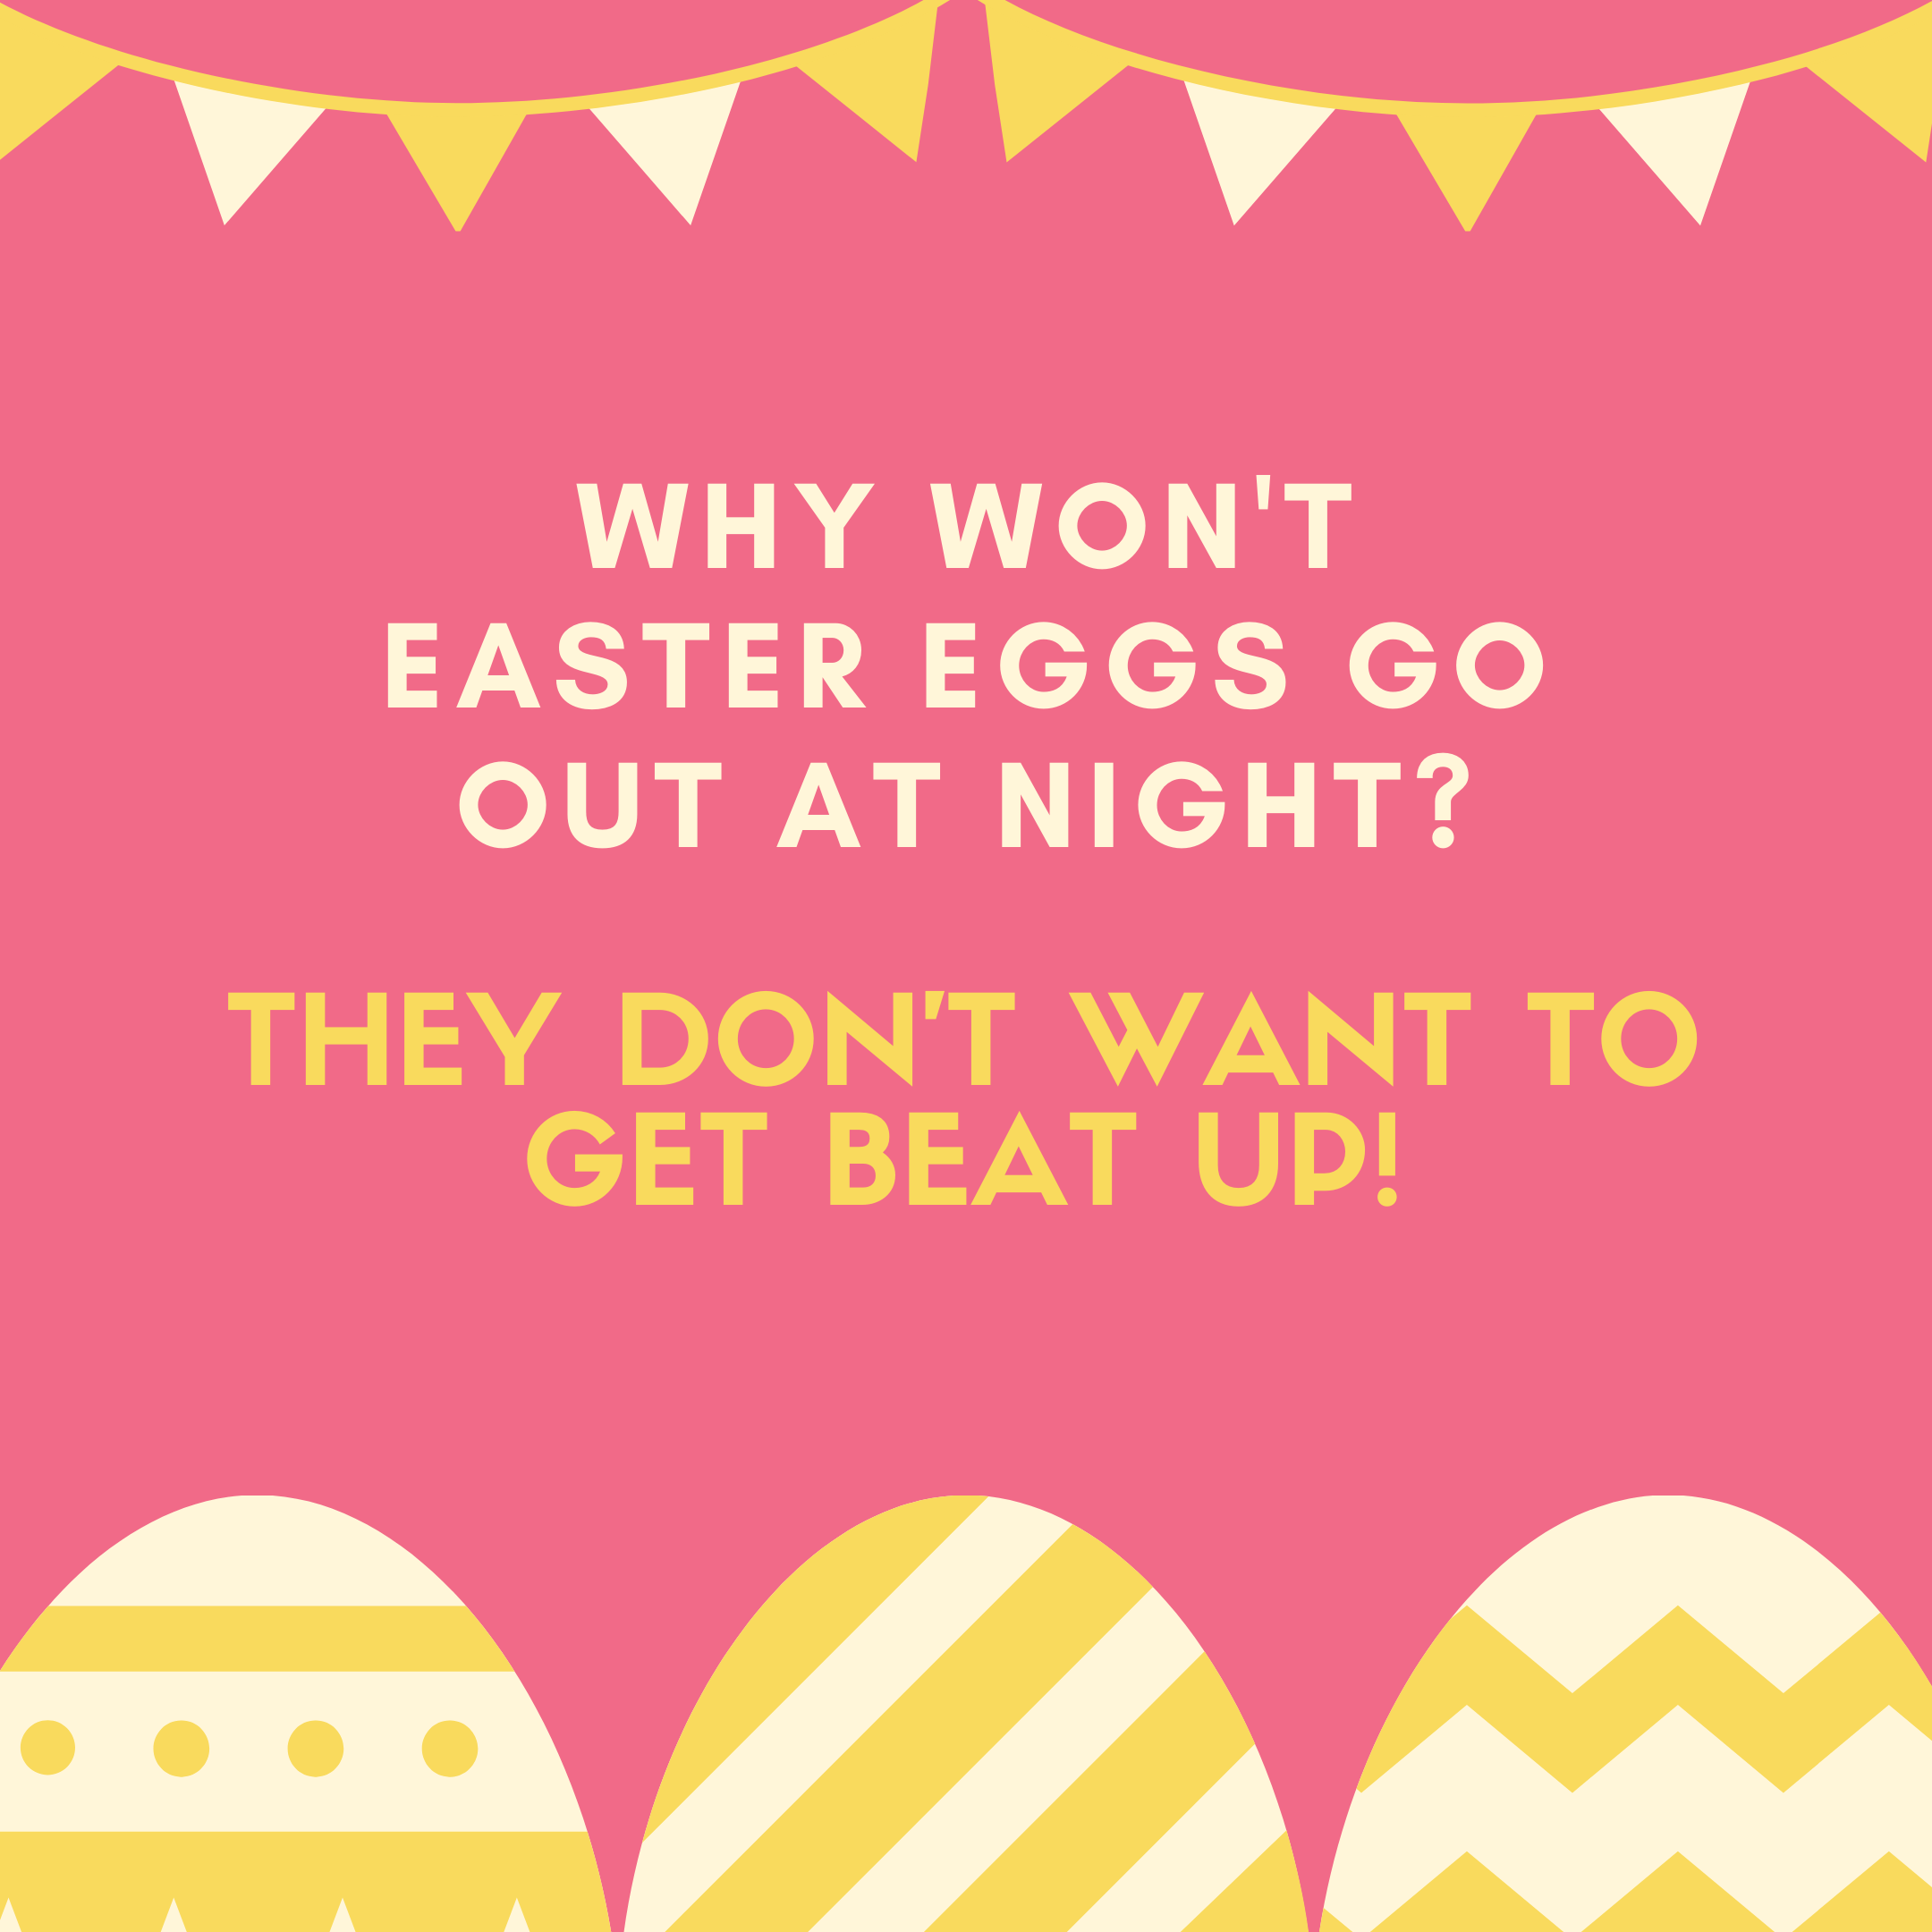 Why won't Easter eggs go out at night? They don't want to get beat up!